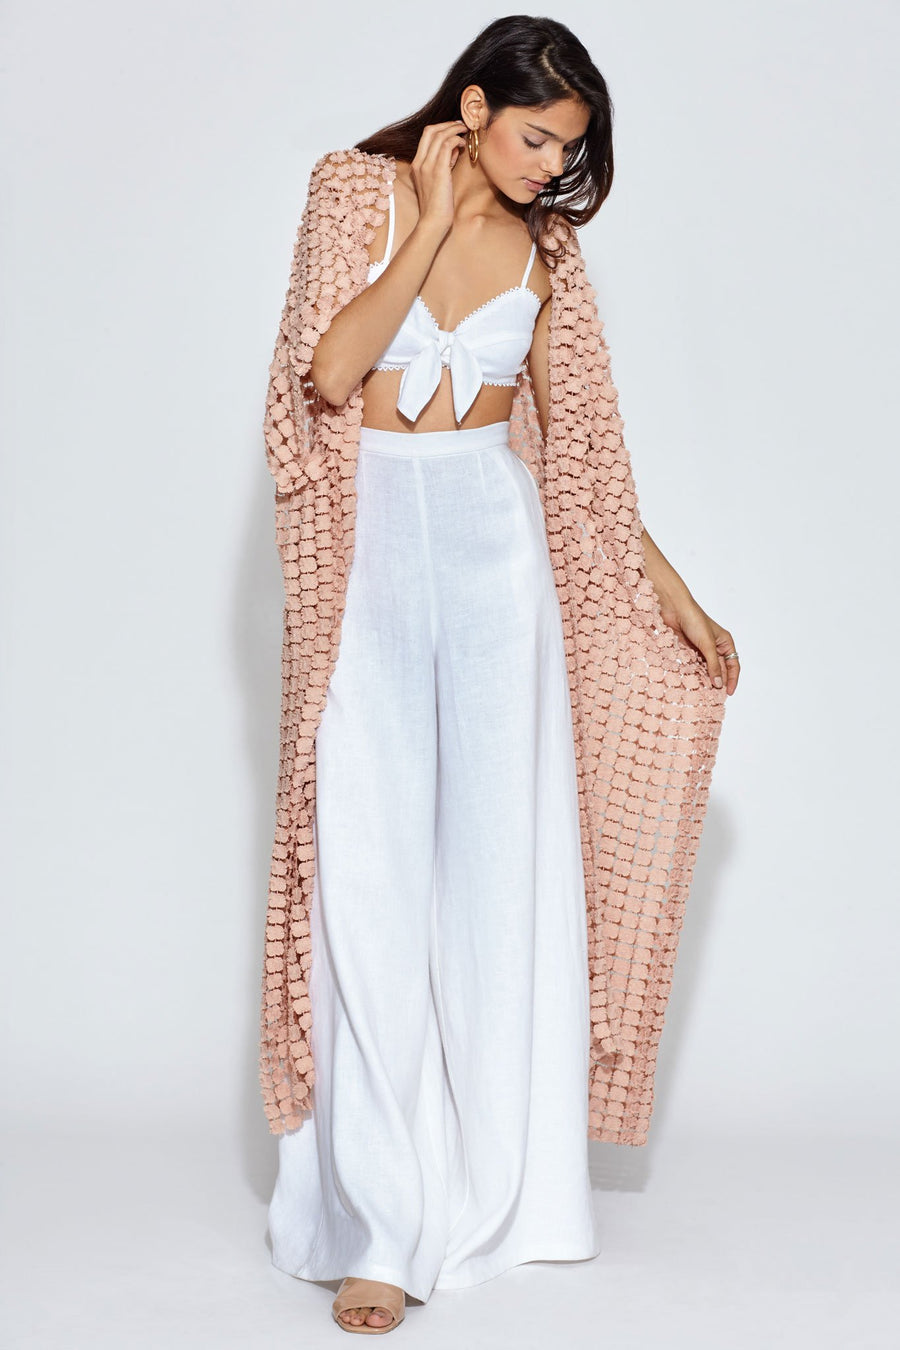 This is a photo of a woman wearing a white linen bralette with white linen wide leg pants. On top of the bralette and pants, she is wearing a dusty pink, dandelion lace cover-up.